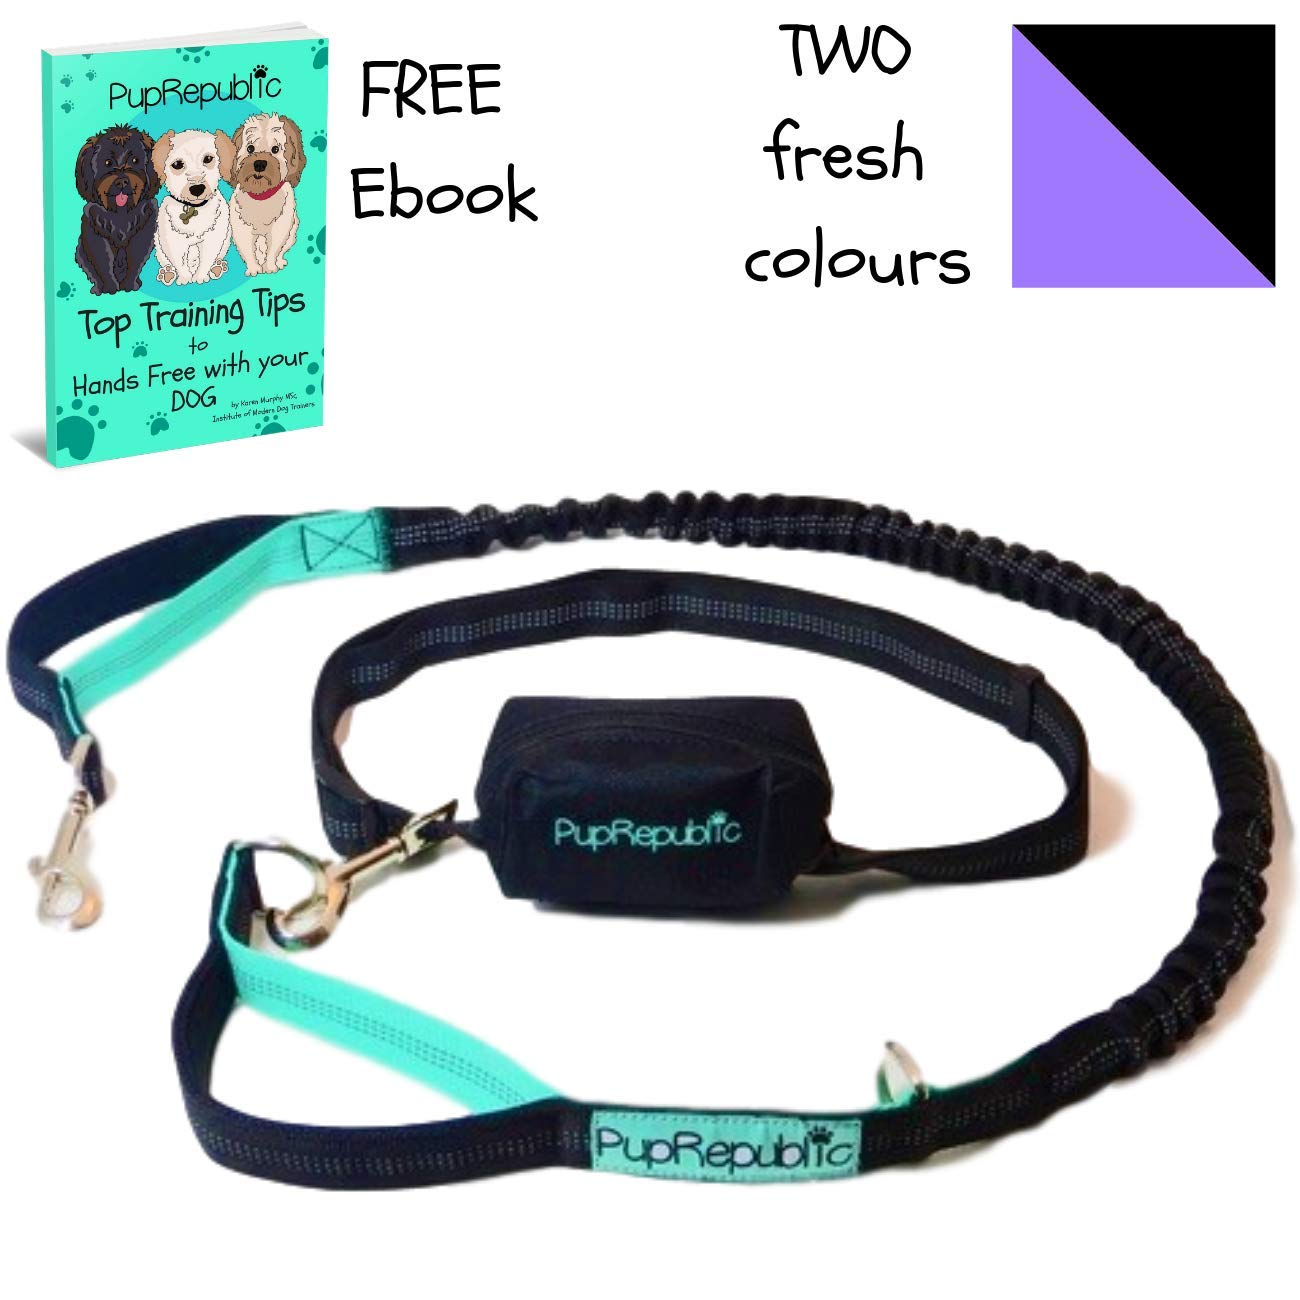 PupRepublic Hands Free Dog Lead for Running Walking Hiking.Adjustable Waist Belt,Reflective Bungee Lead FREE Poo Bag Pouch